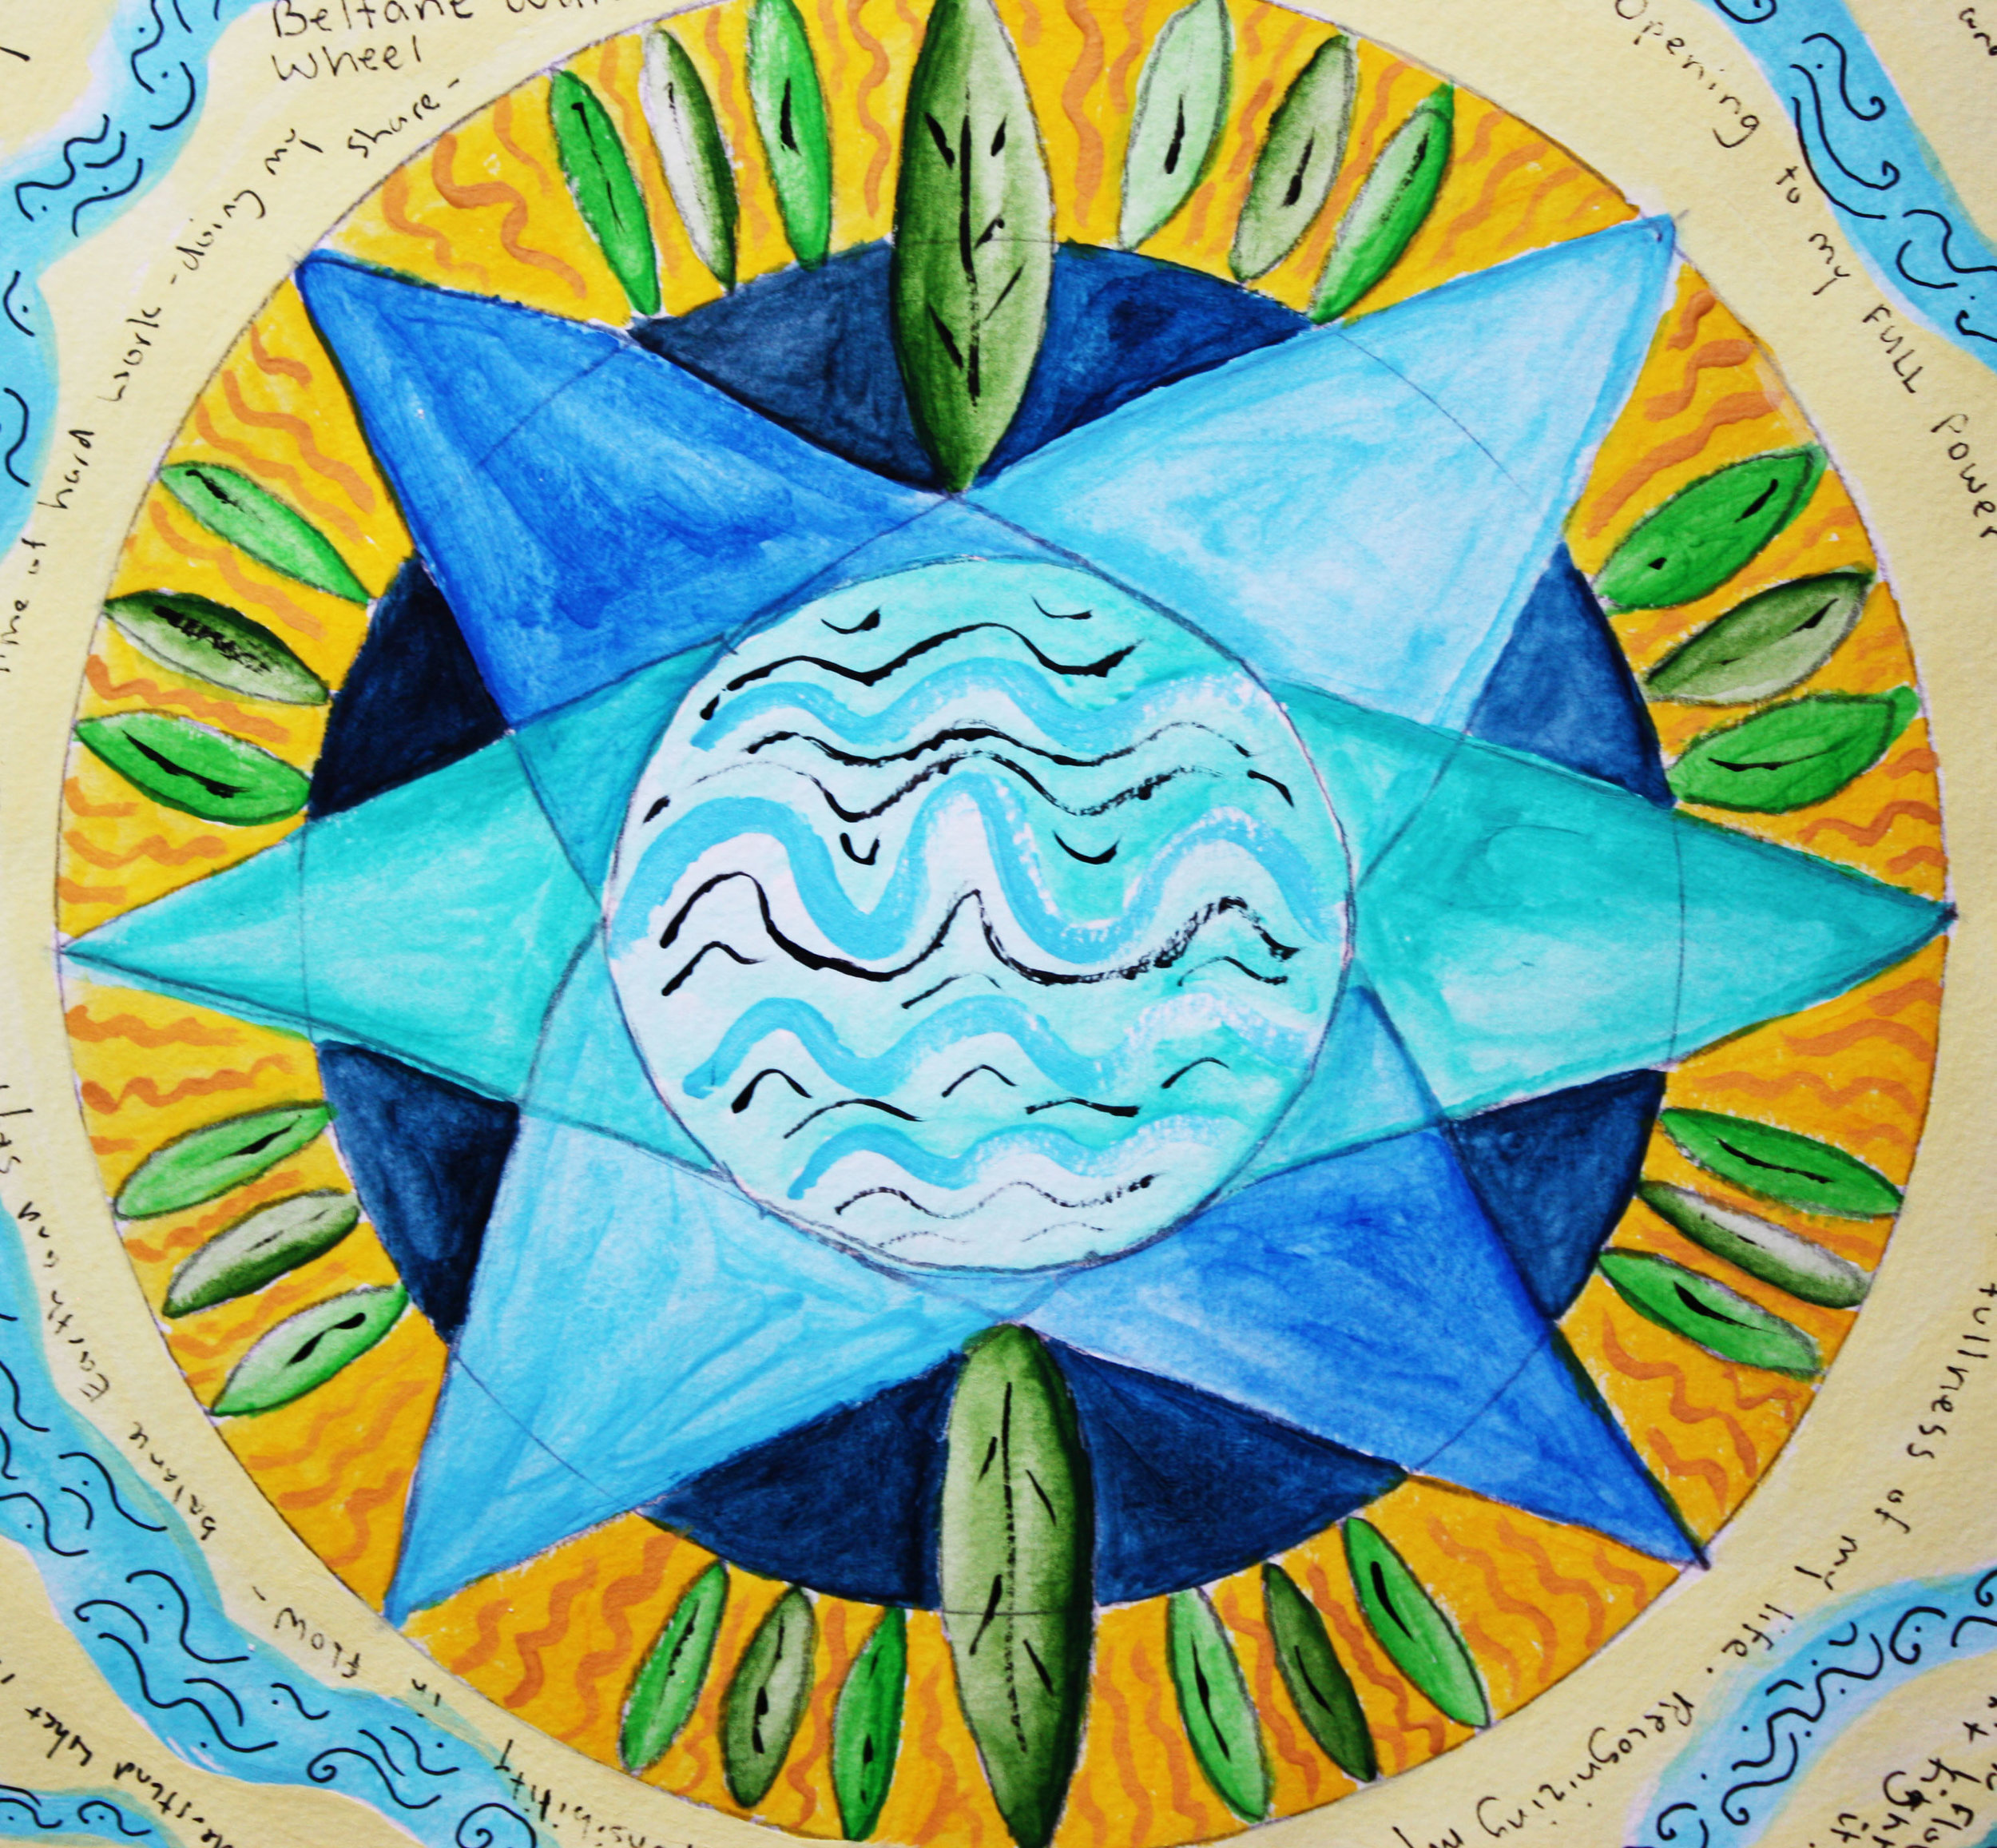 Listen to artist, yogini and mother Lisa Hofmann share about creative practice, self-care, presence and healing... (Mandala by Lisa Hofmann)